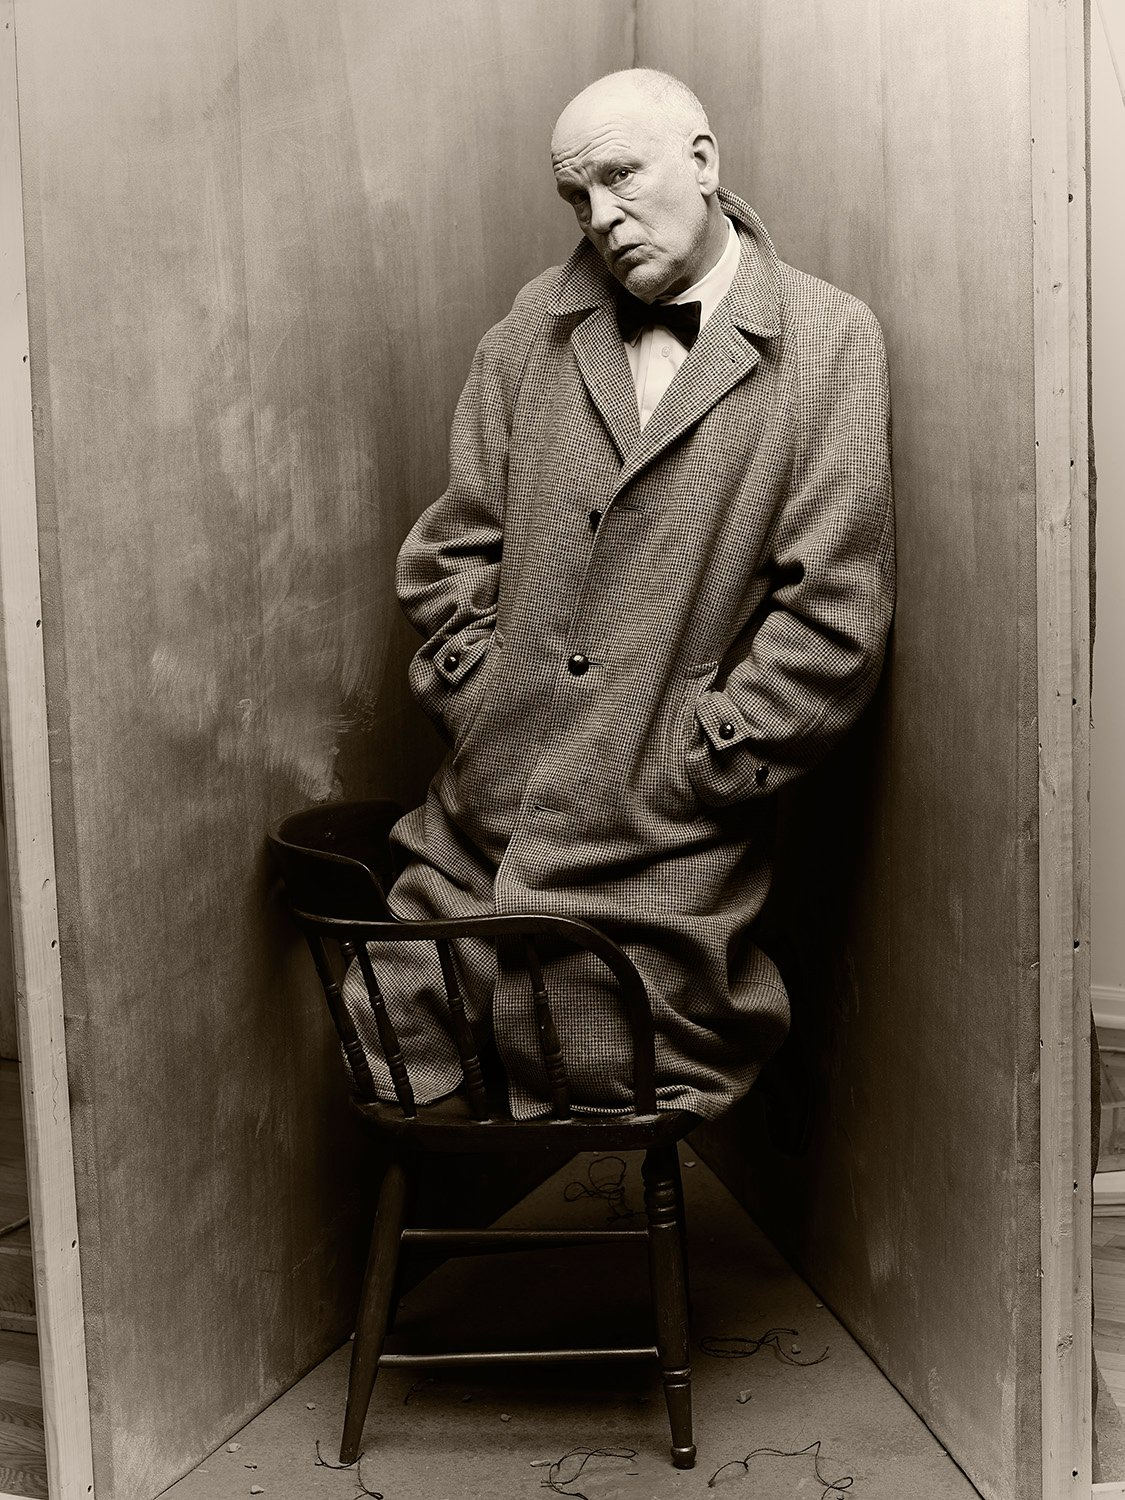 the-series-began-two-years-ago-when-sandro-came-up-with-the-idea-to-pay-homage-to-his-hero-irving-penn-by-recreating-one-of-his-iconic-images-a-photograph-of-the-author-truman-capote-kneeling-on-a-chair-wedged-in-a-corner-created-in-penns-studio-he-r.jpg